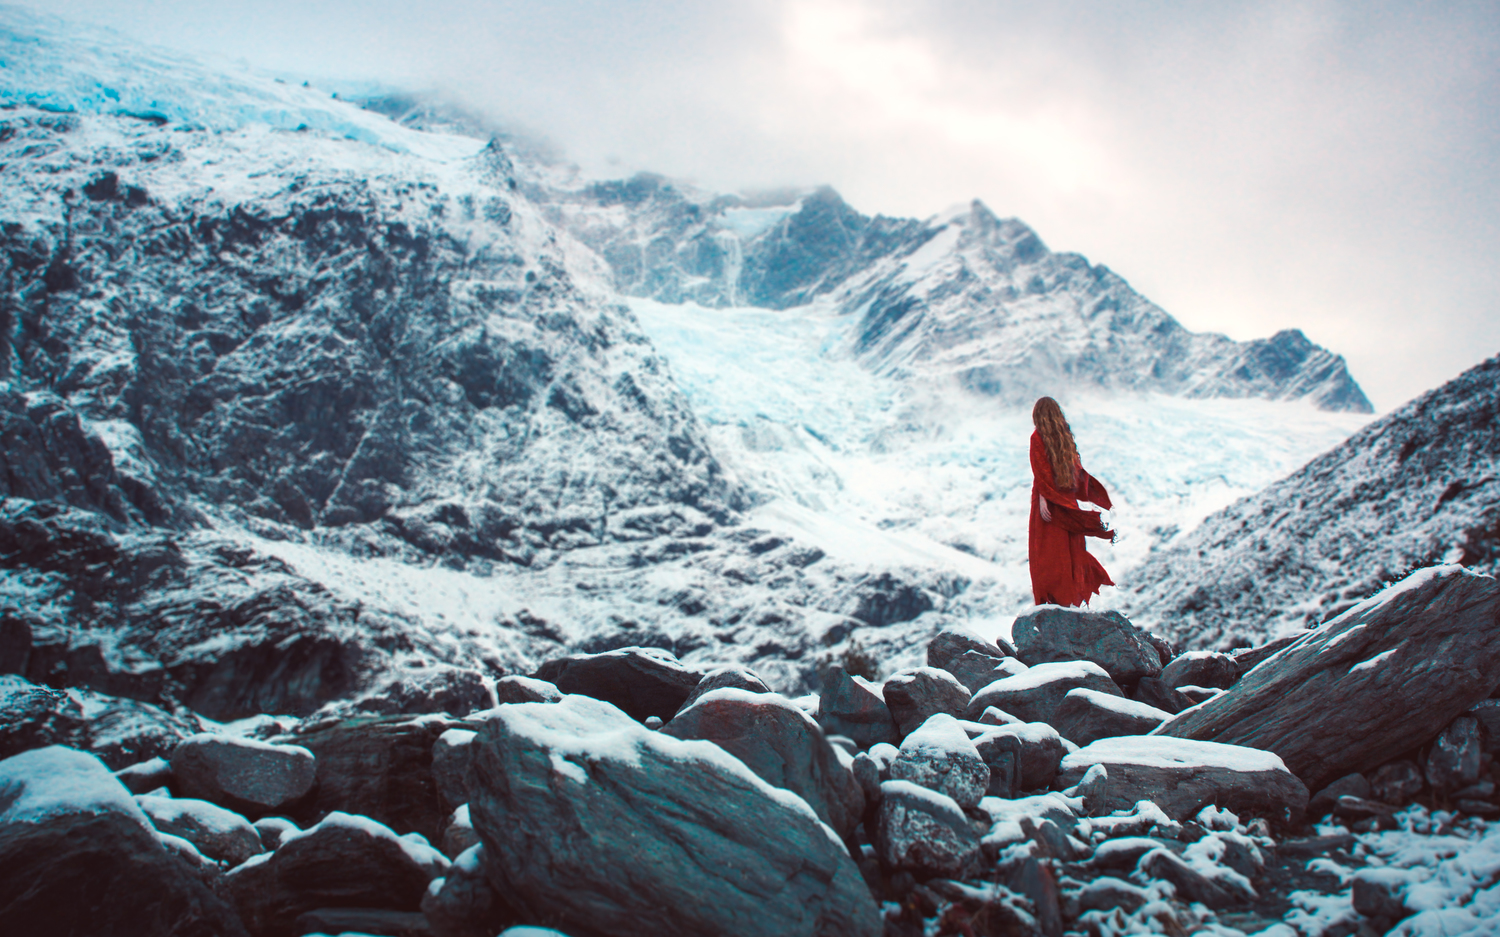 A New Zealand Adventure Elizabeth Gadd Photography - Awe inspiring landscape photography elizabeth gadd